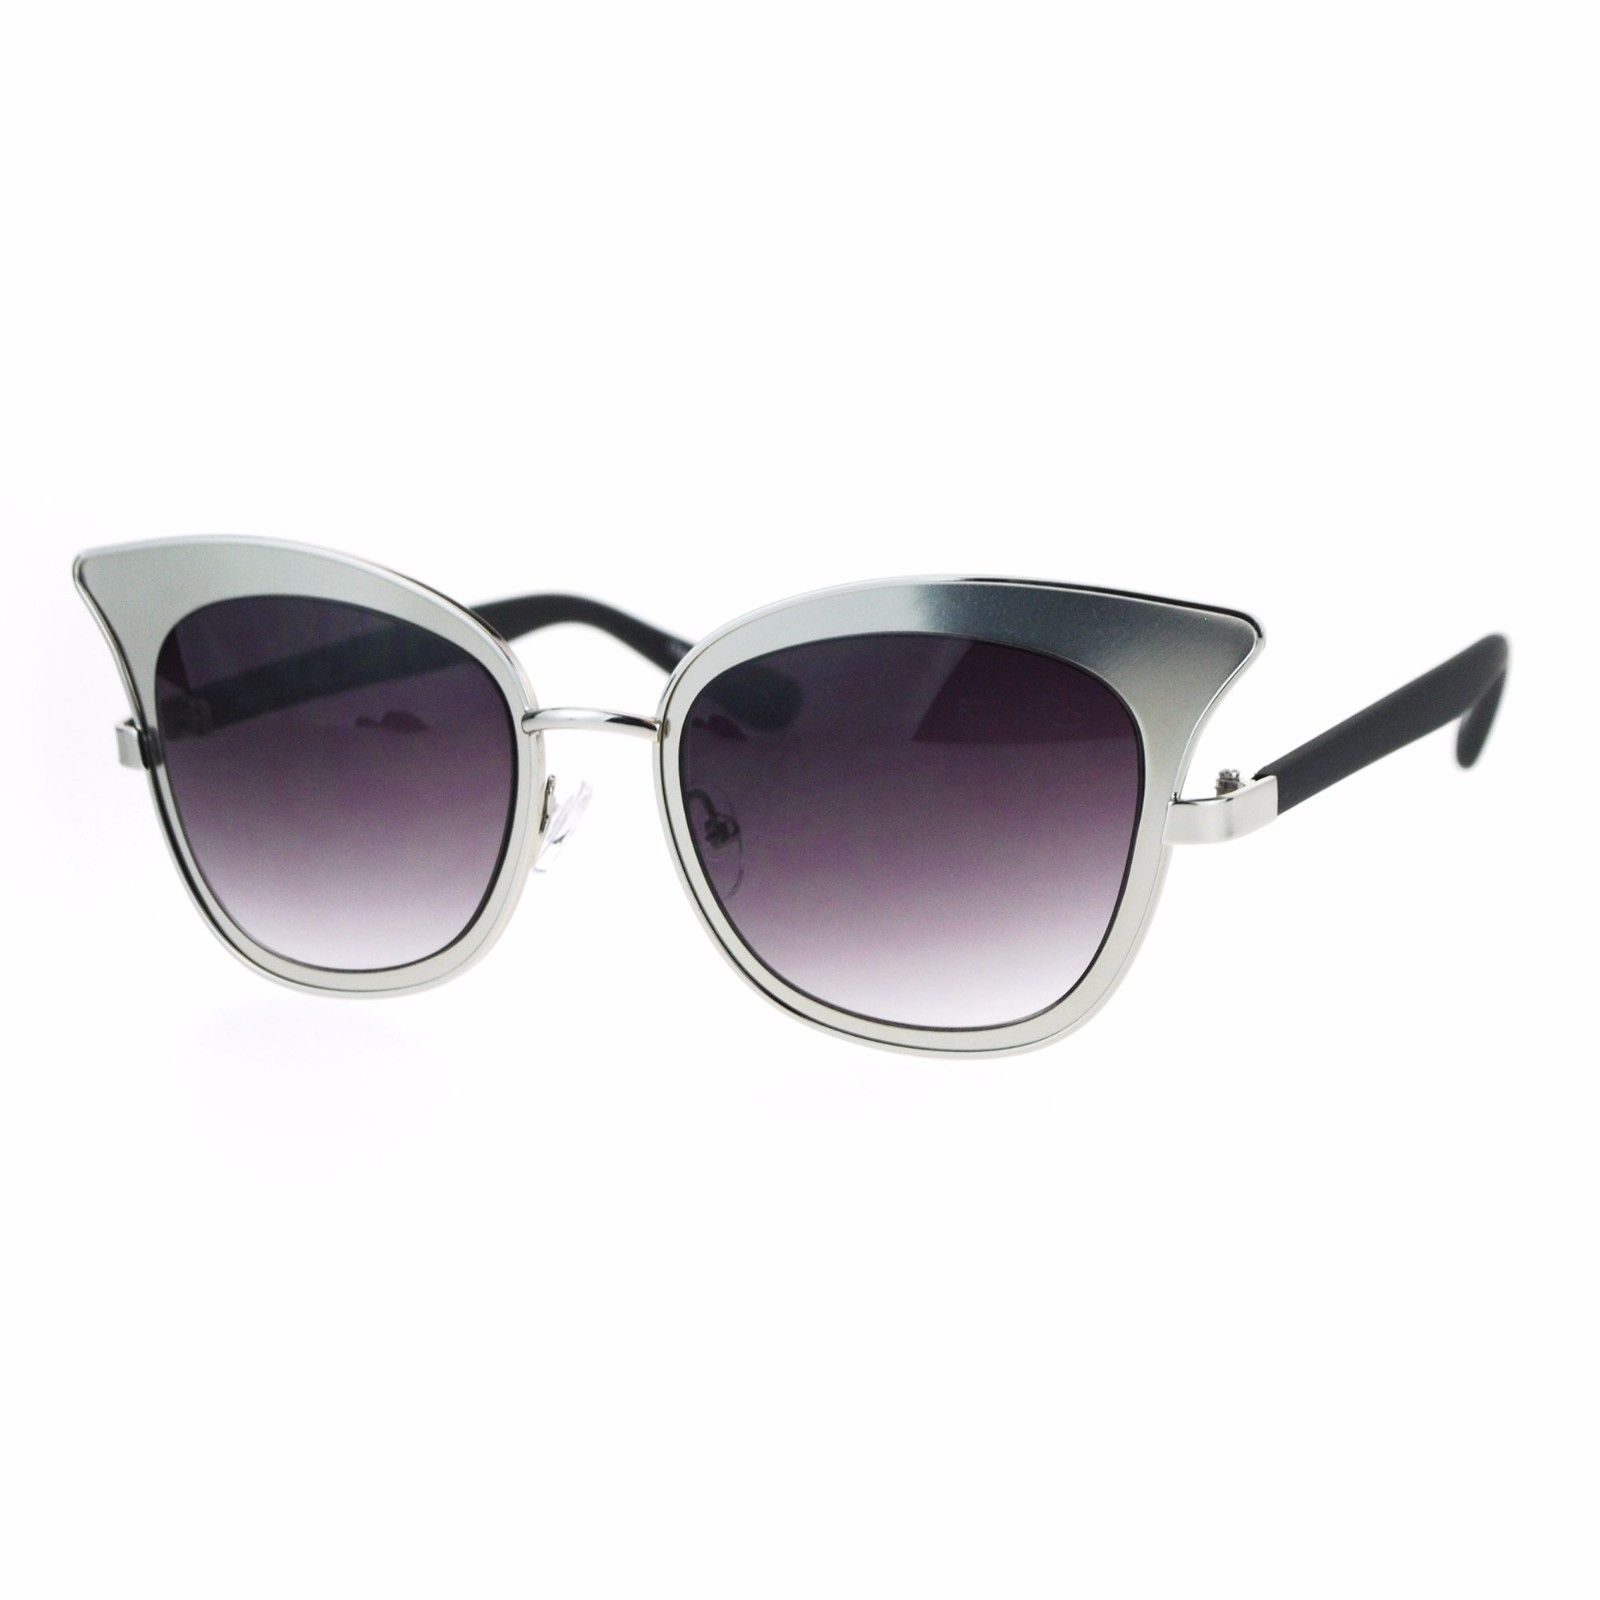 PASTL Womens Sunglasses Butterfly Cateye Fashion Double Frame UV 400 - $11.95